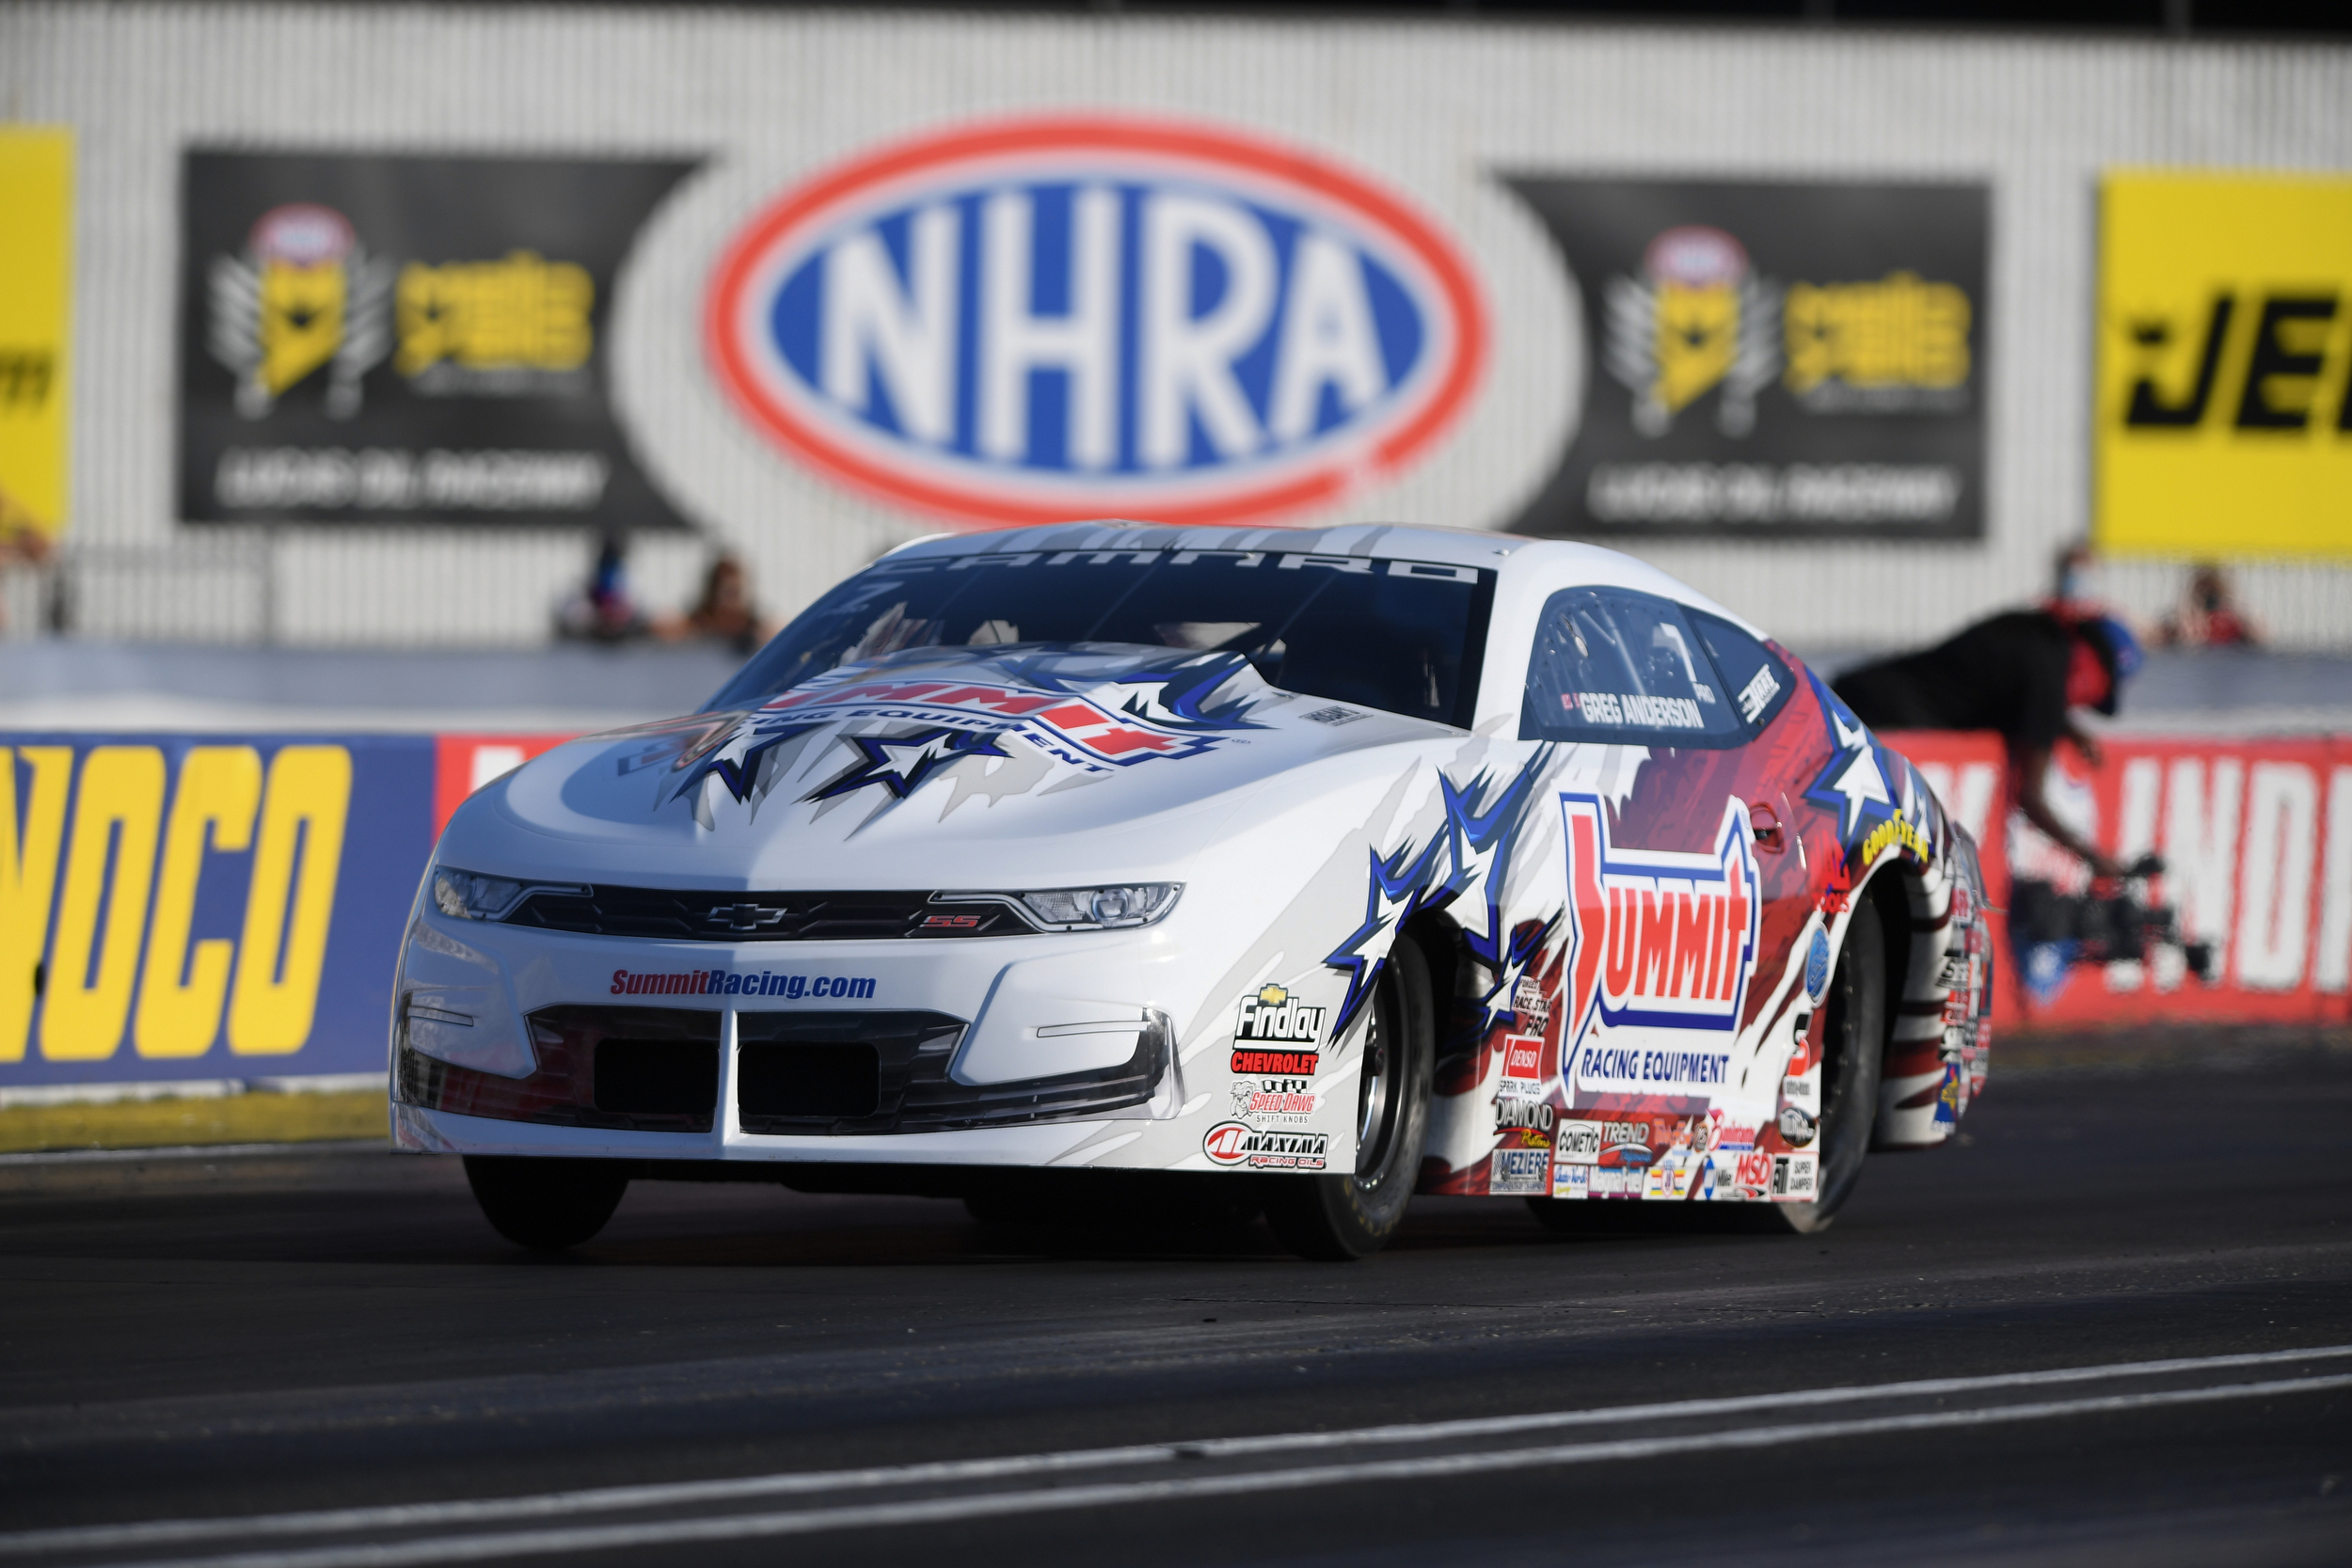 Summit Racing Equipment Pro Stock driver Greg Anderson racing on Saturday at the Denso Spark Plugs U.S. Nationals